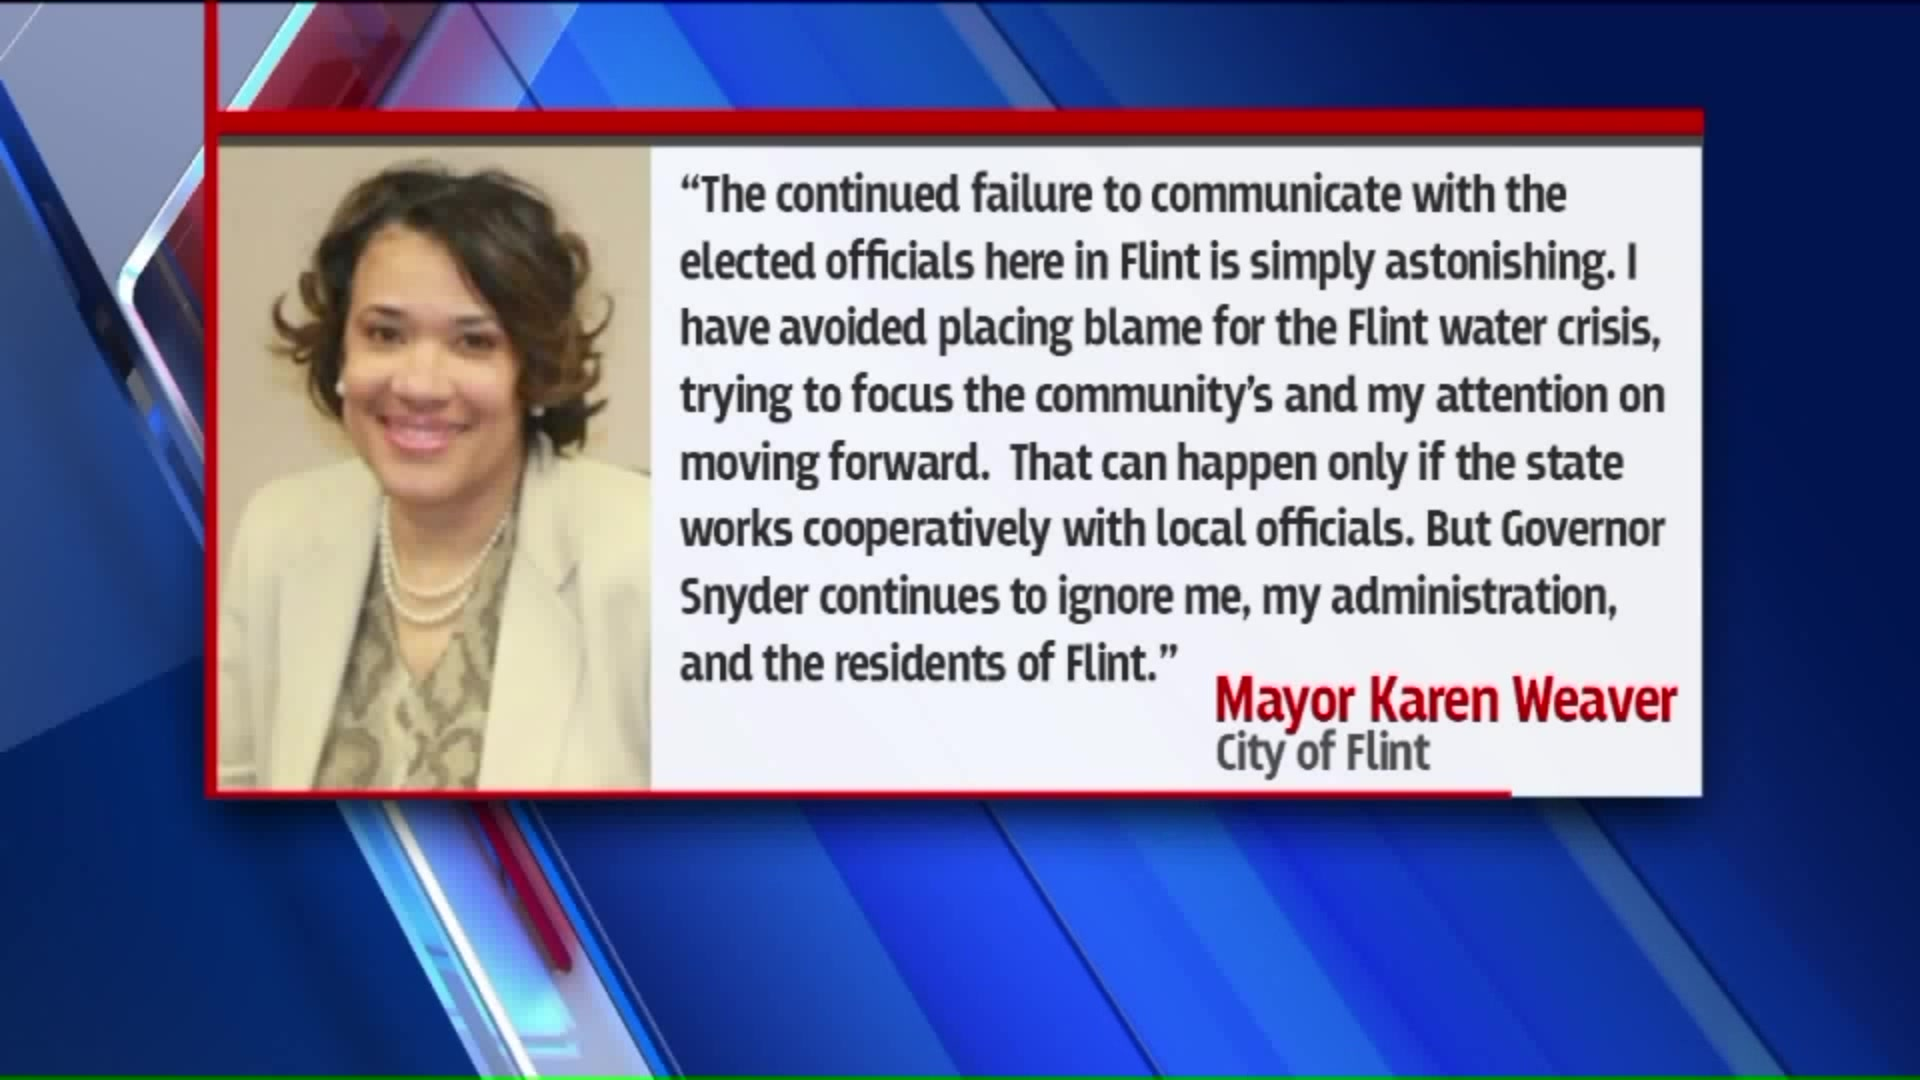 Flint Mayor Takes Aim At Michigan Governor Amid Water Crisis